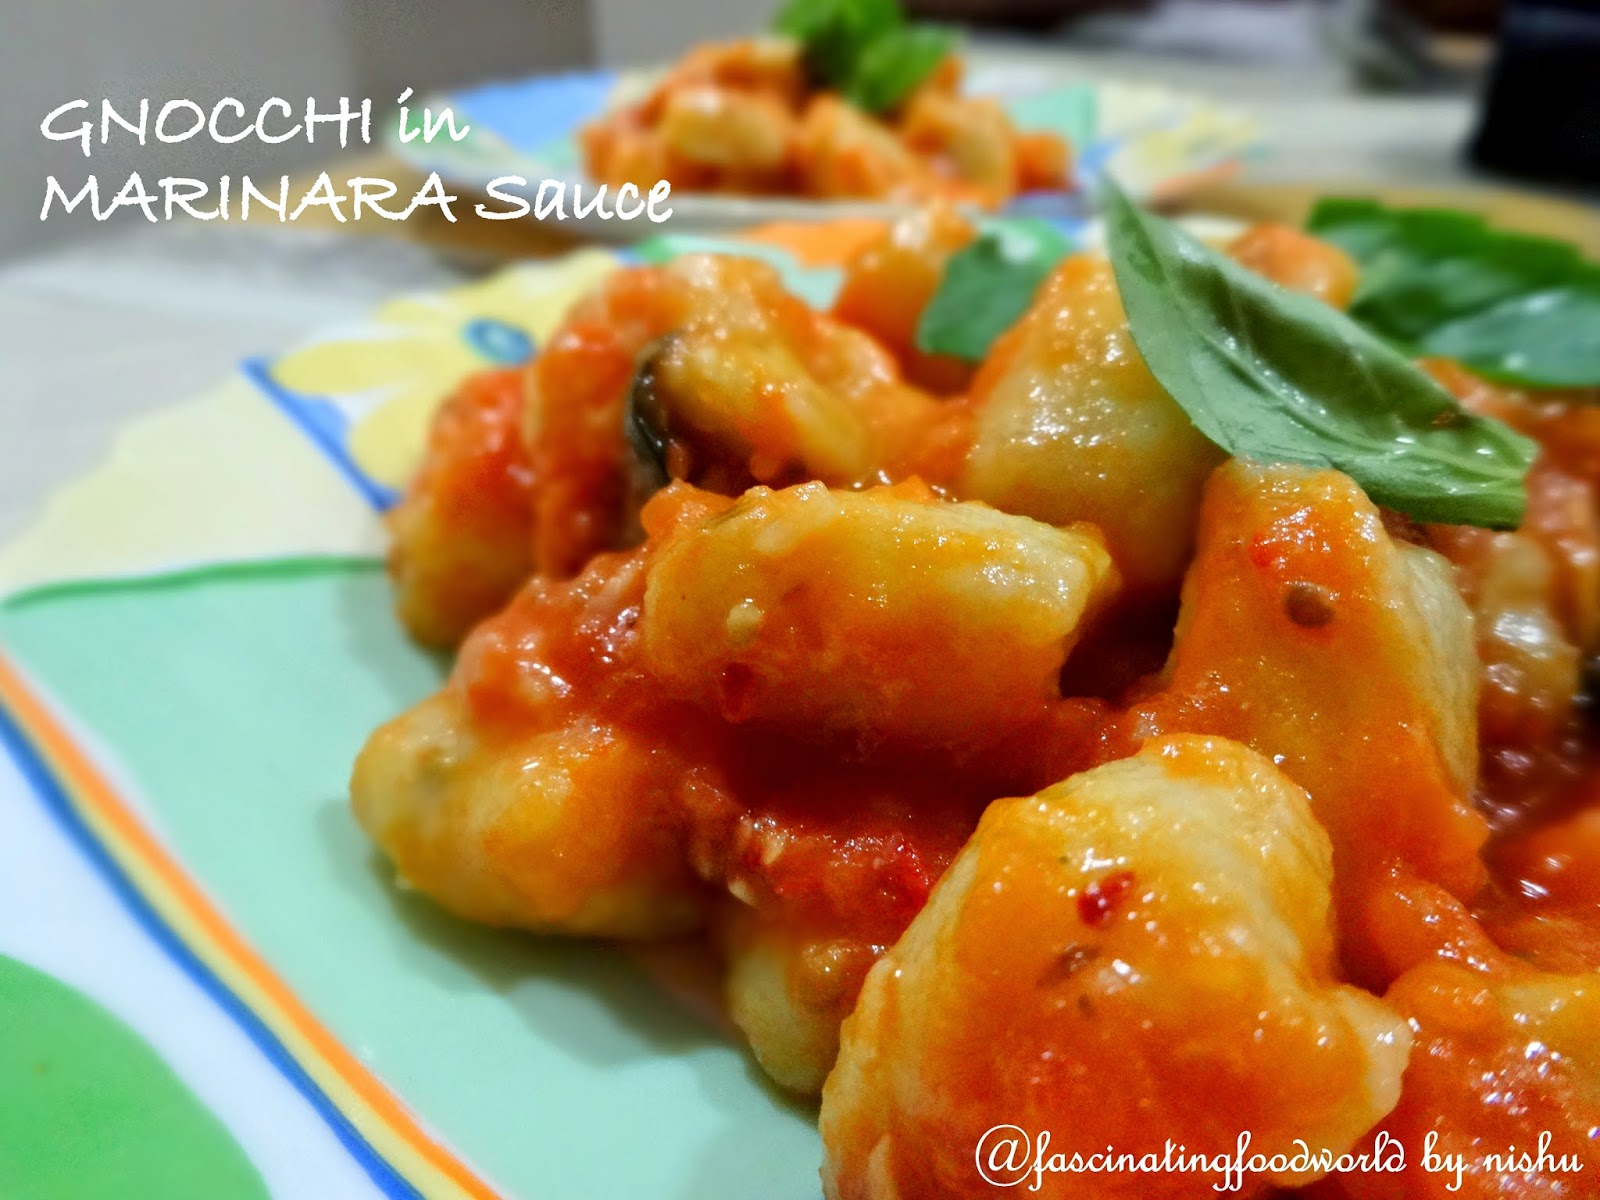 like any other recipe gnocchi has many variations some recipes